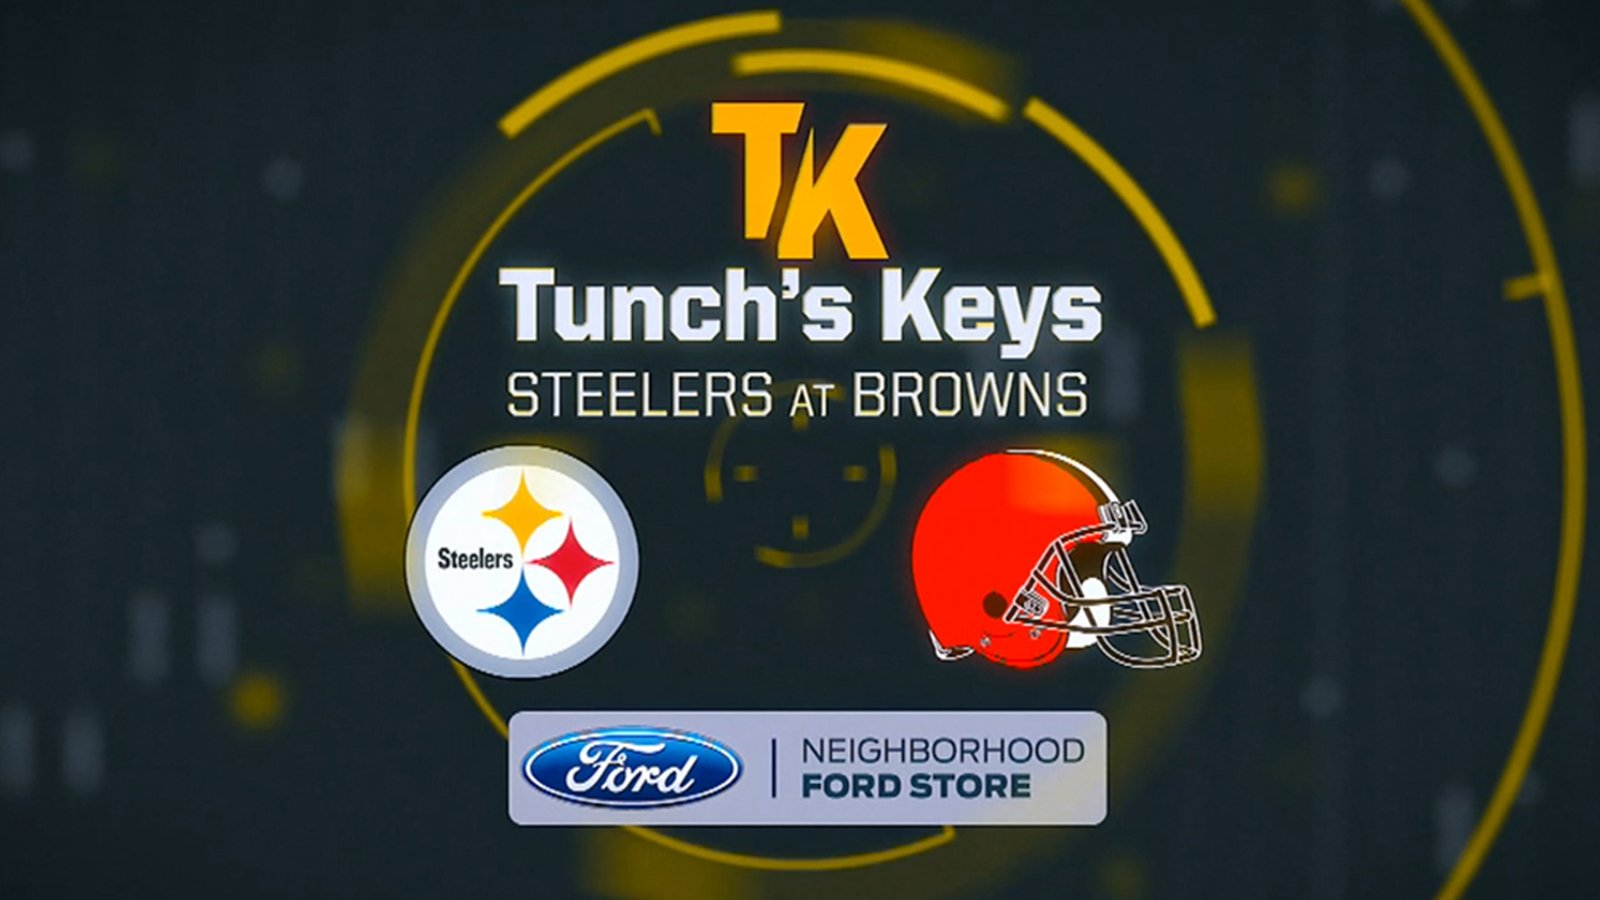 #TunchsKeys for Week 1: 1️⃣ Rattle the rookie 2️⃣ Stop the screen pass 3️⃣ Protect Ben https://t.co/nGLgMRyyyv